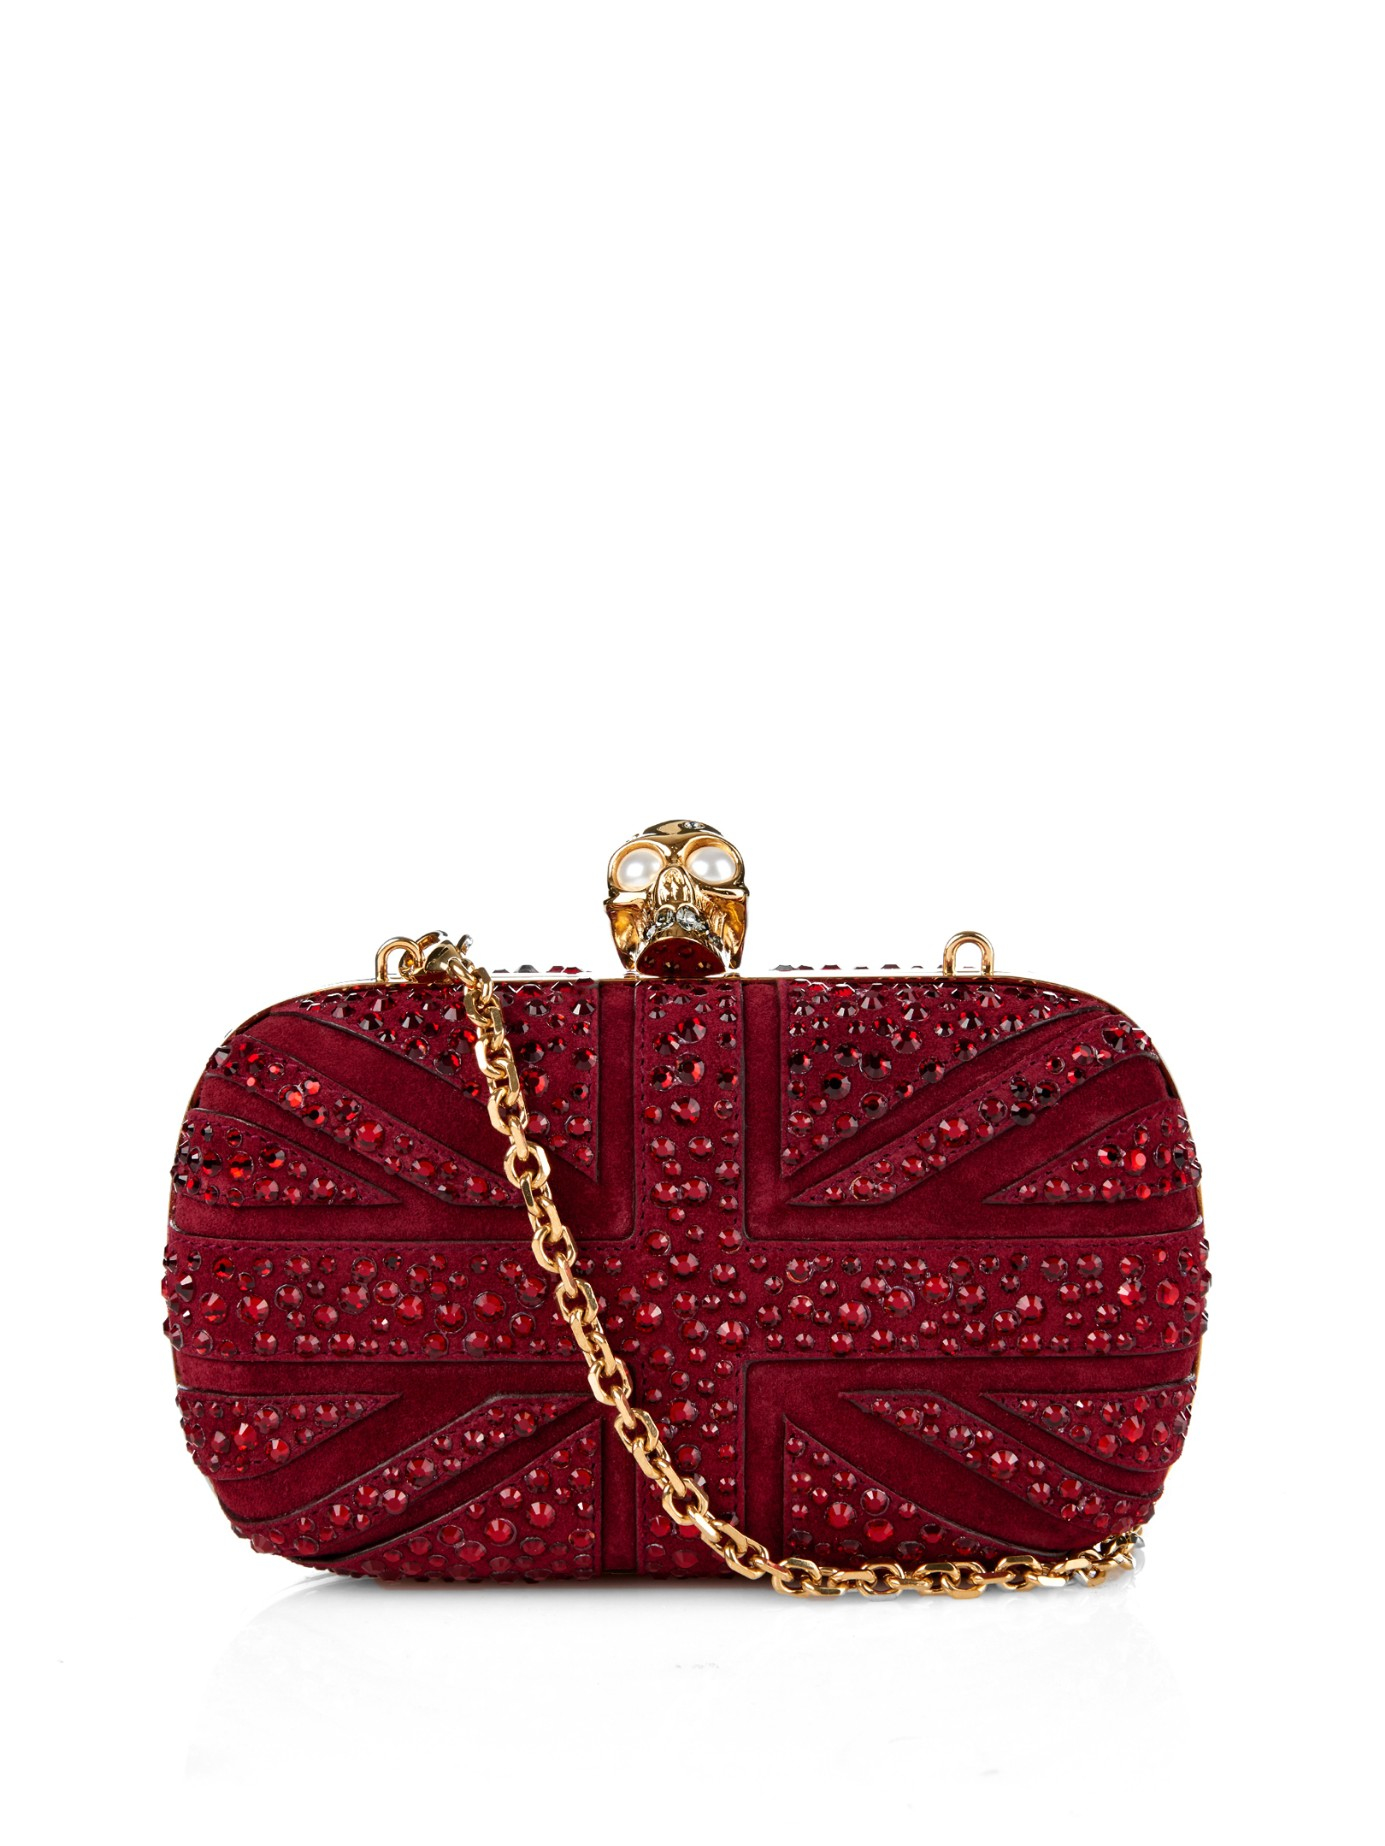 Alexander McQueen pink suede Sue Box embellished clutch Explore Pictures Online Buy Cheap 2018 smU1tP